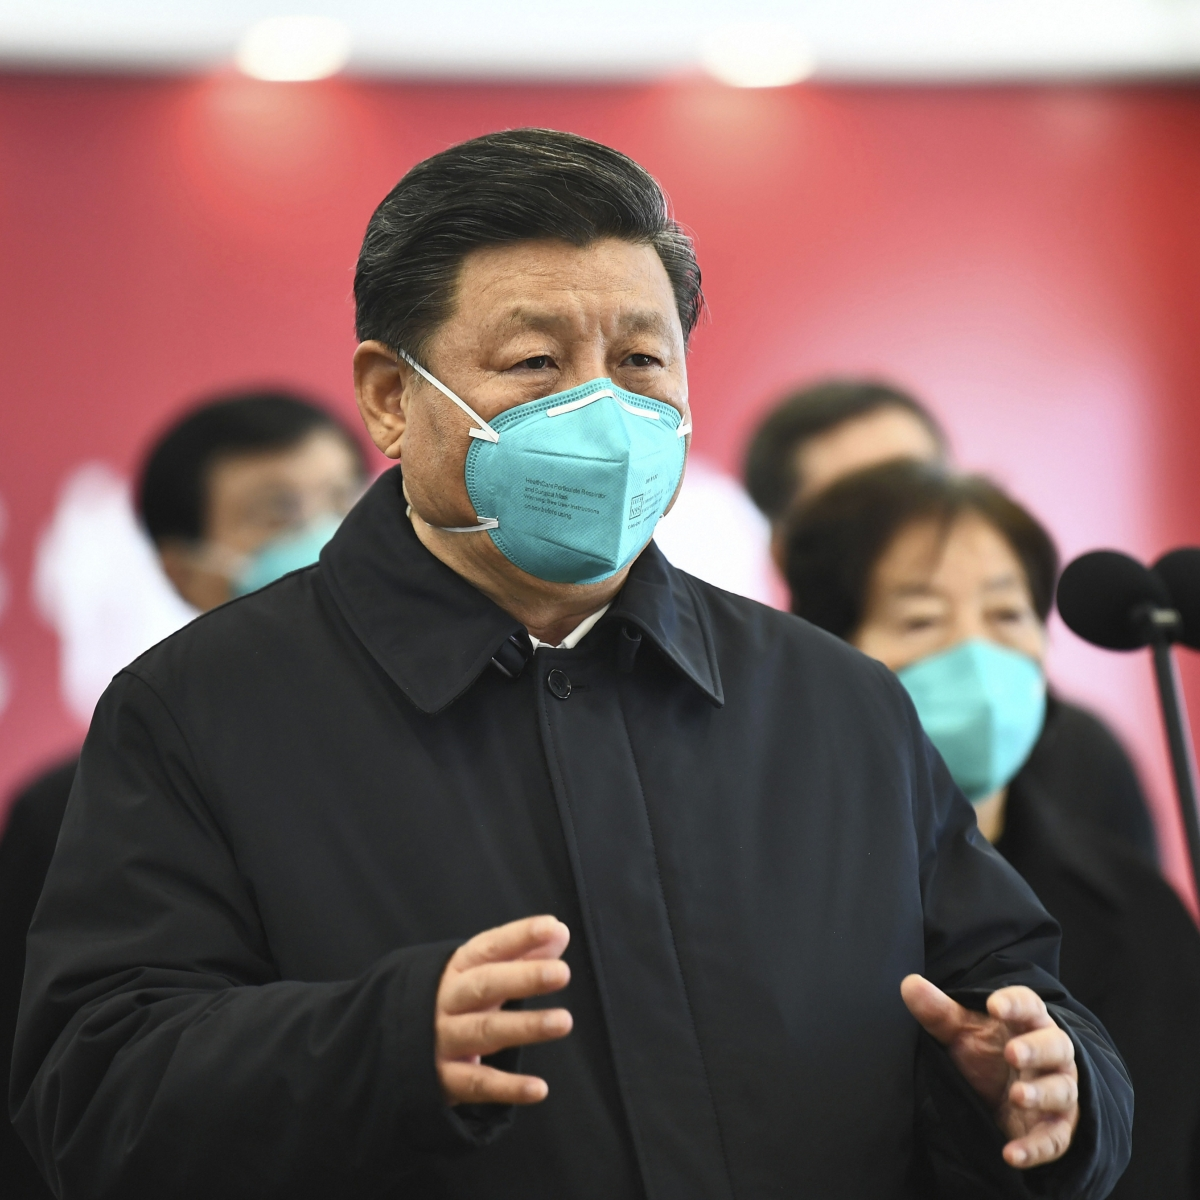 China reports 22 new coronavirus deaths, Xi Jinping makes first visit to epicentre Wuhan